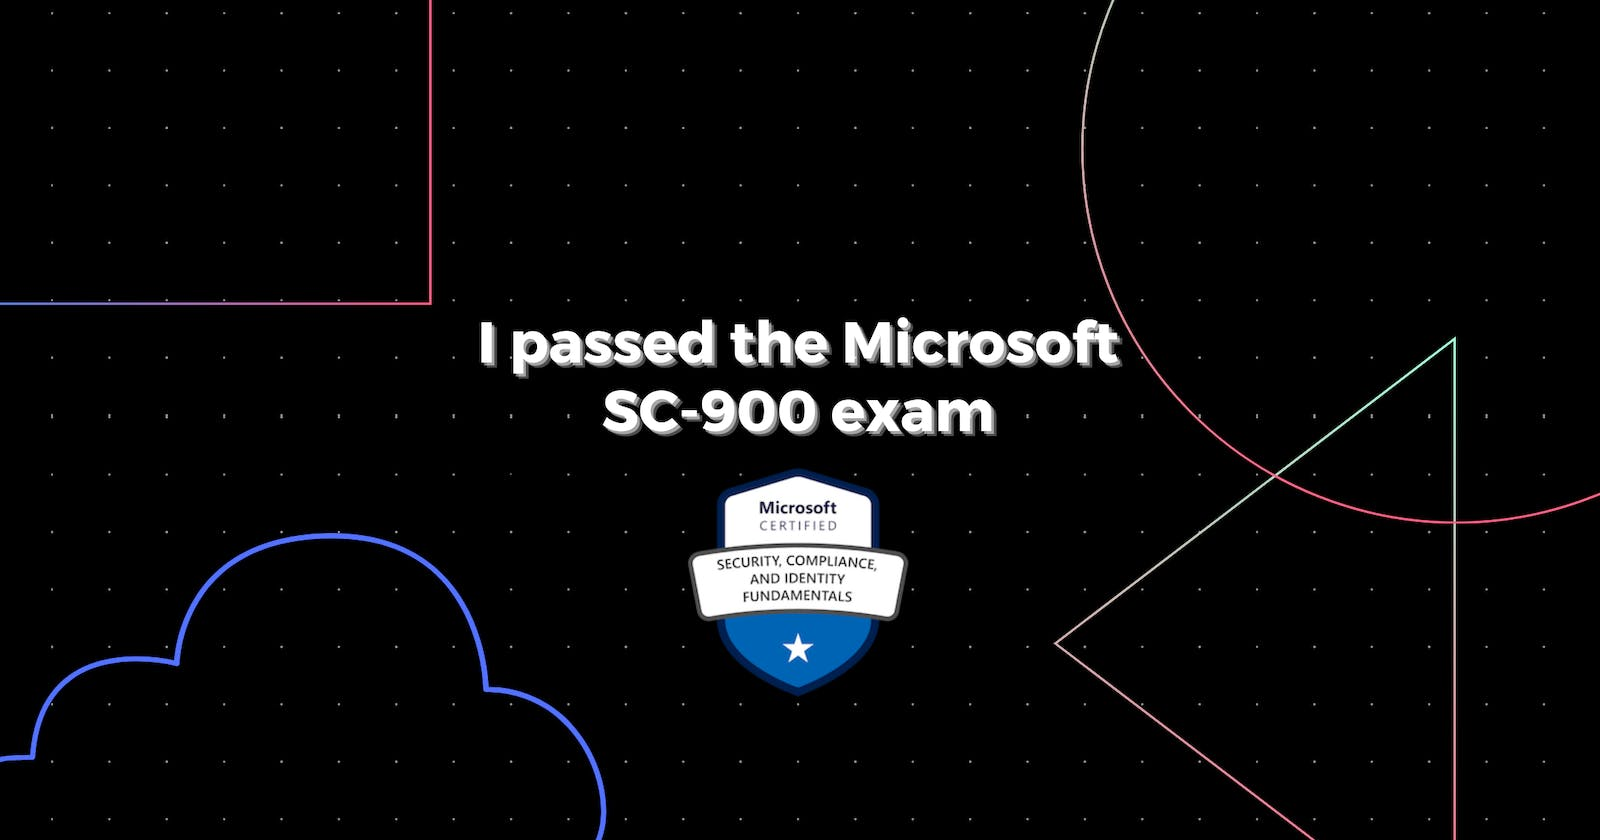 How I passed the SC-900 Microsoft Security, Compliance, and Identity Fundamentals exam